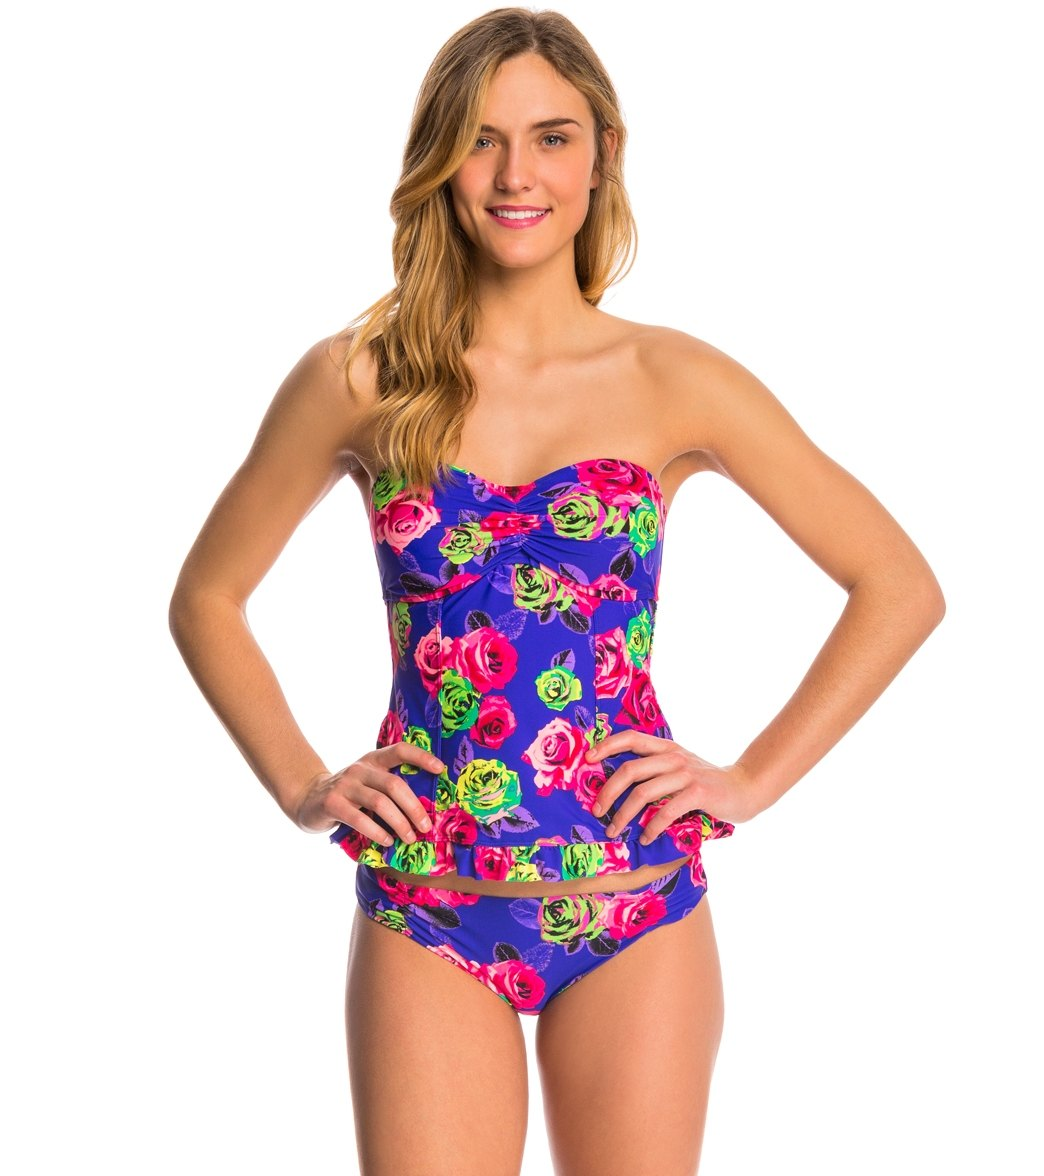 421e4a8e62dc3 Betsey Johnson Swimwear Mysterious Rose Bandeaukini Top at ...